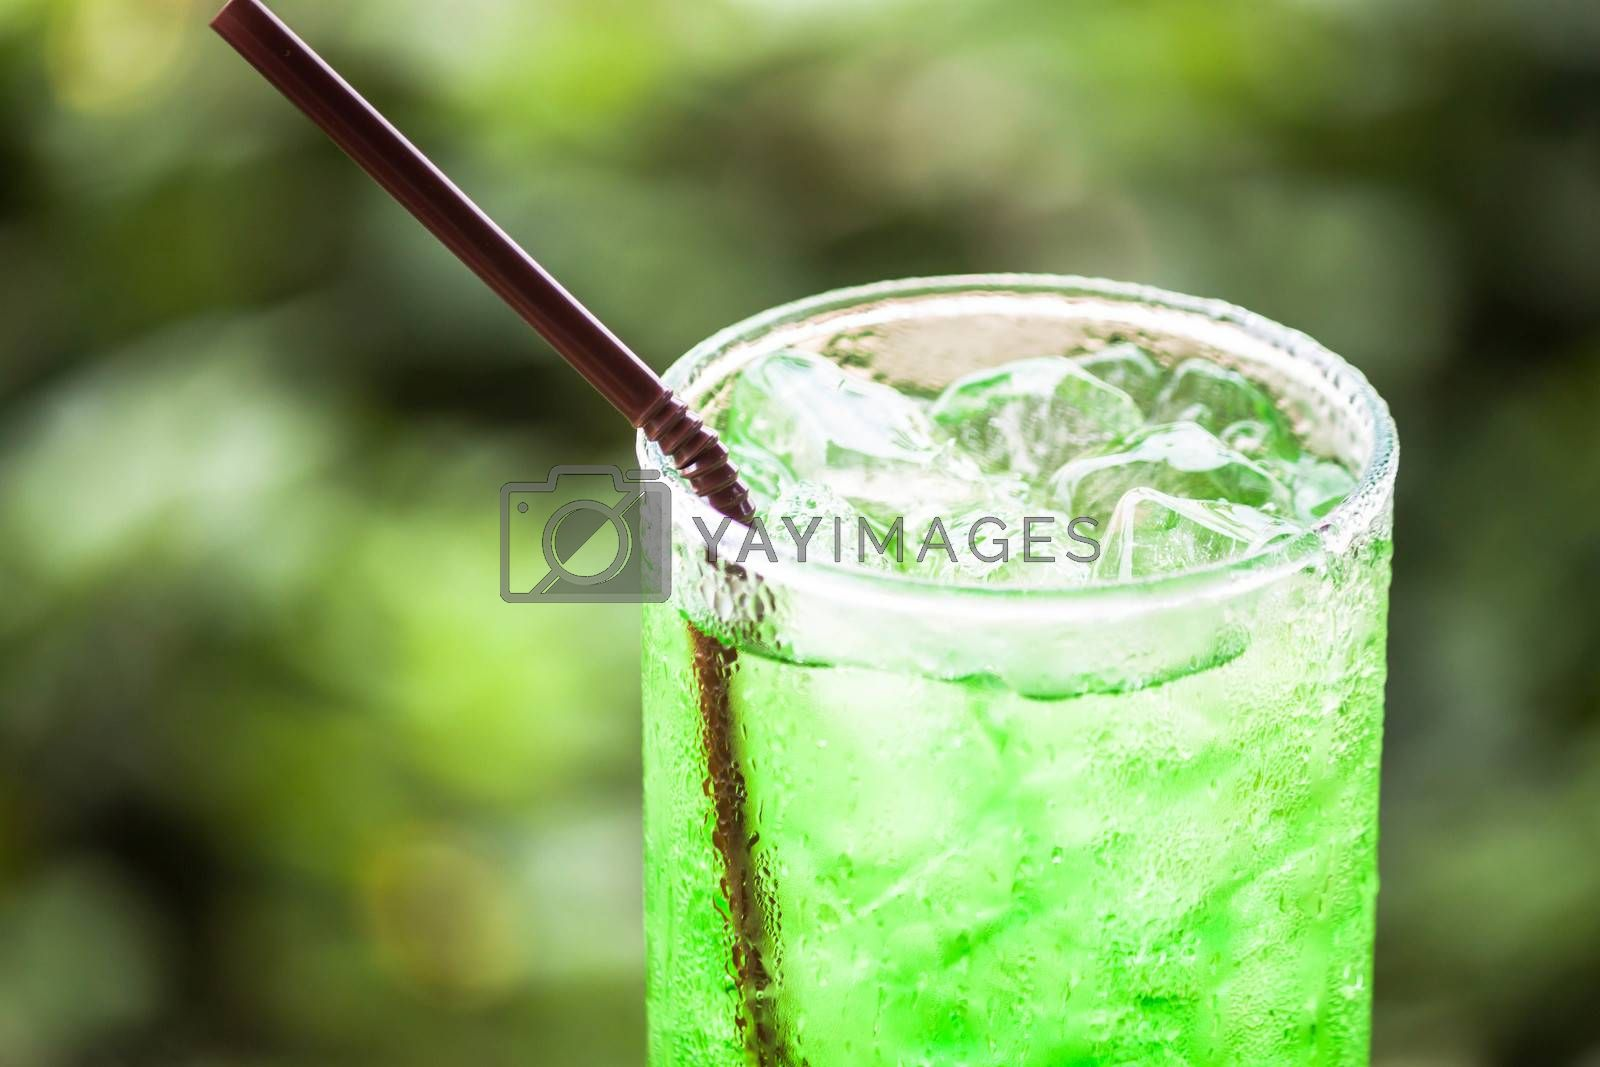 Glass of iced green drink with straw